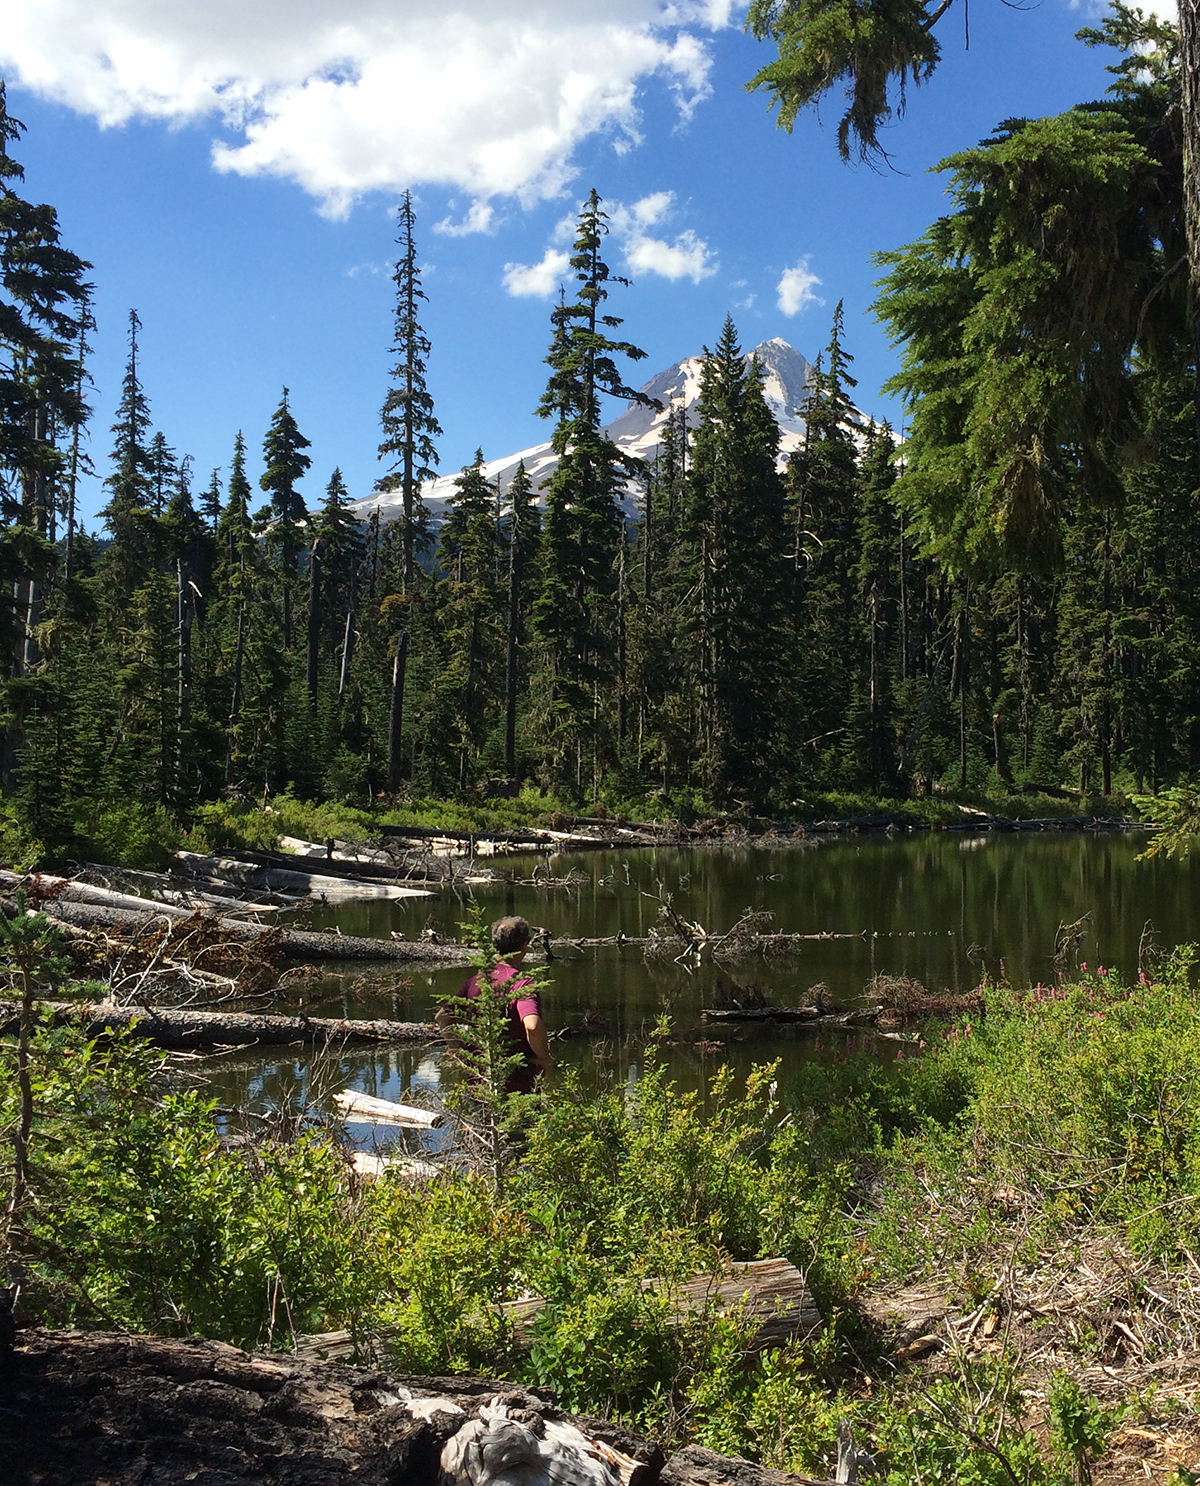 And the smell of the Douglas fir forest on Mt Hood is heavenly (Teacup Lake, not the elusive Boulder Lake which remains elusive)